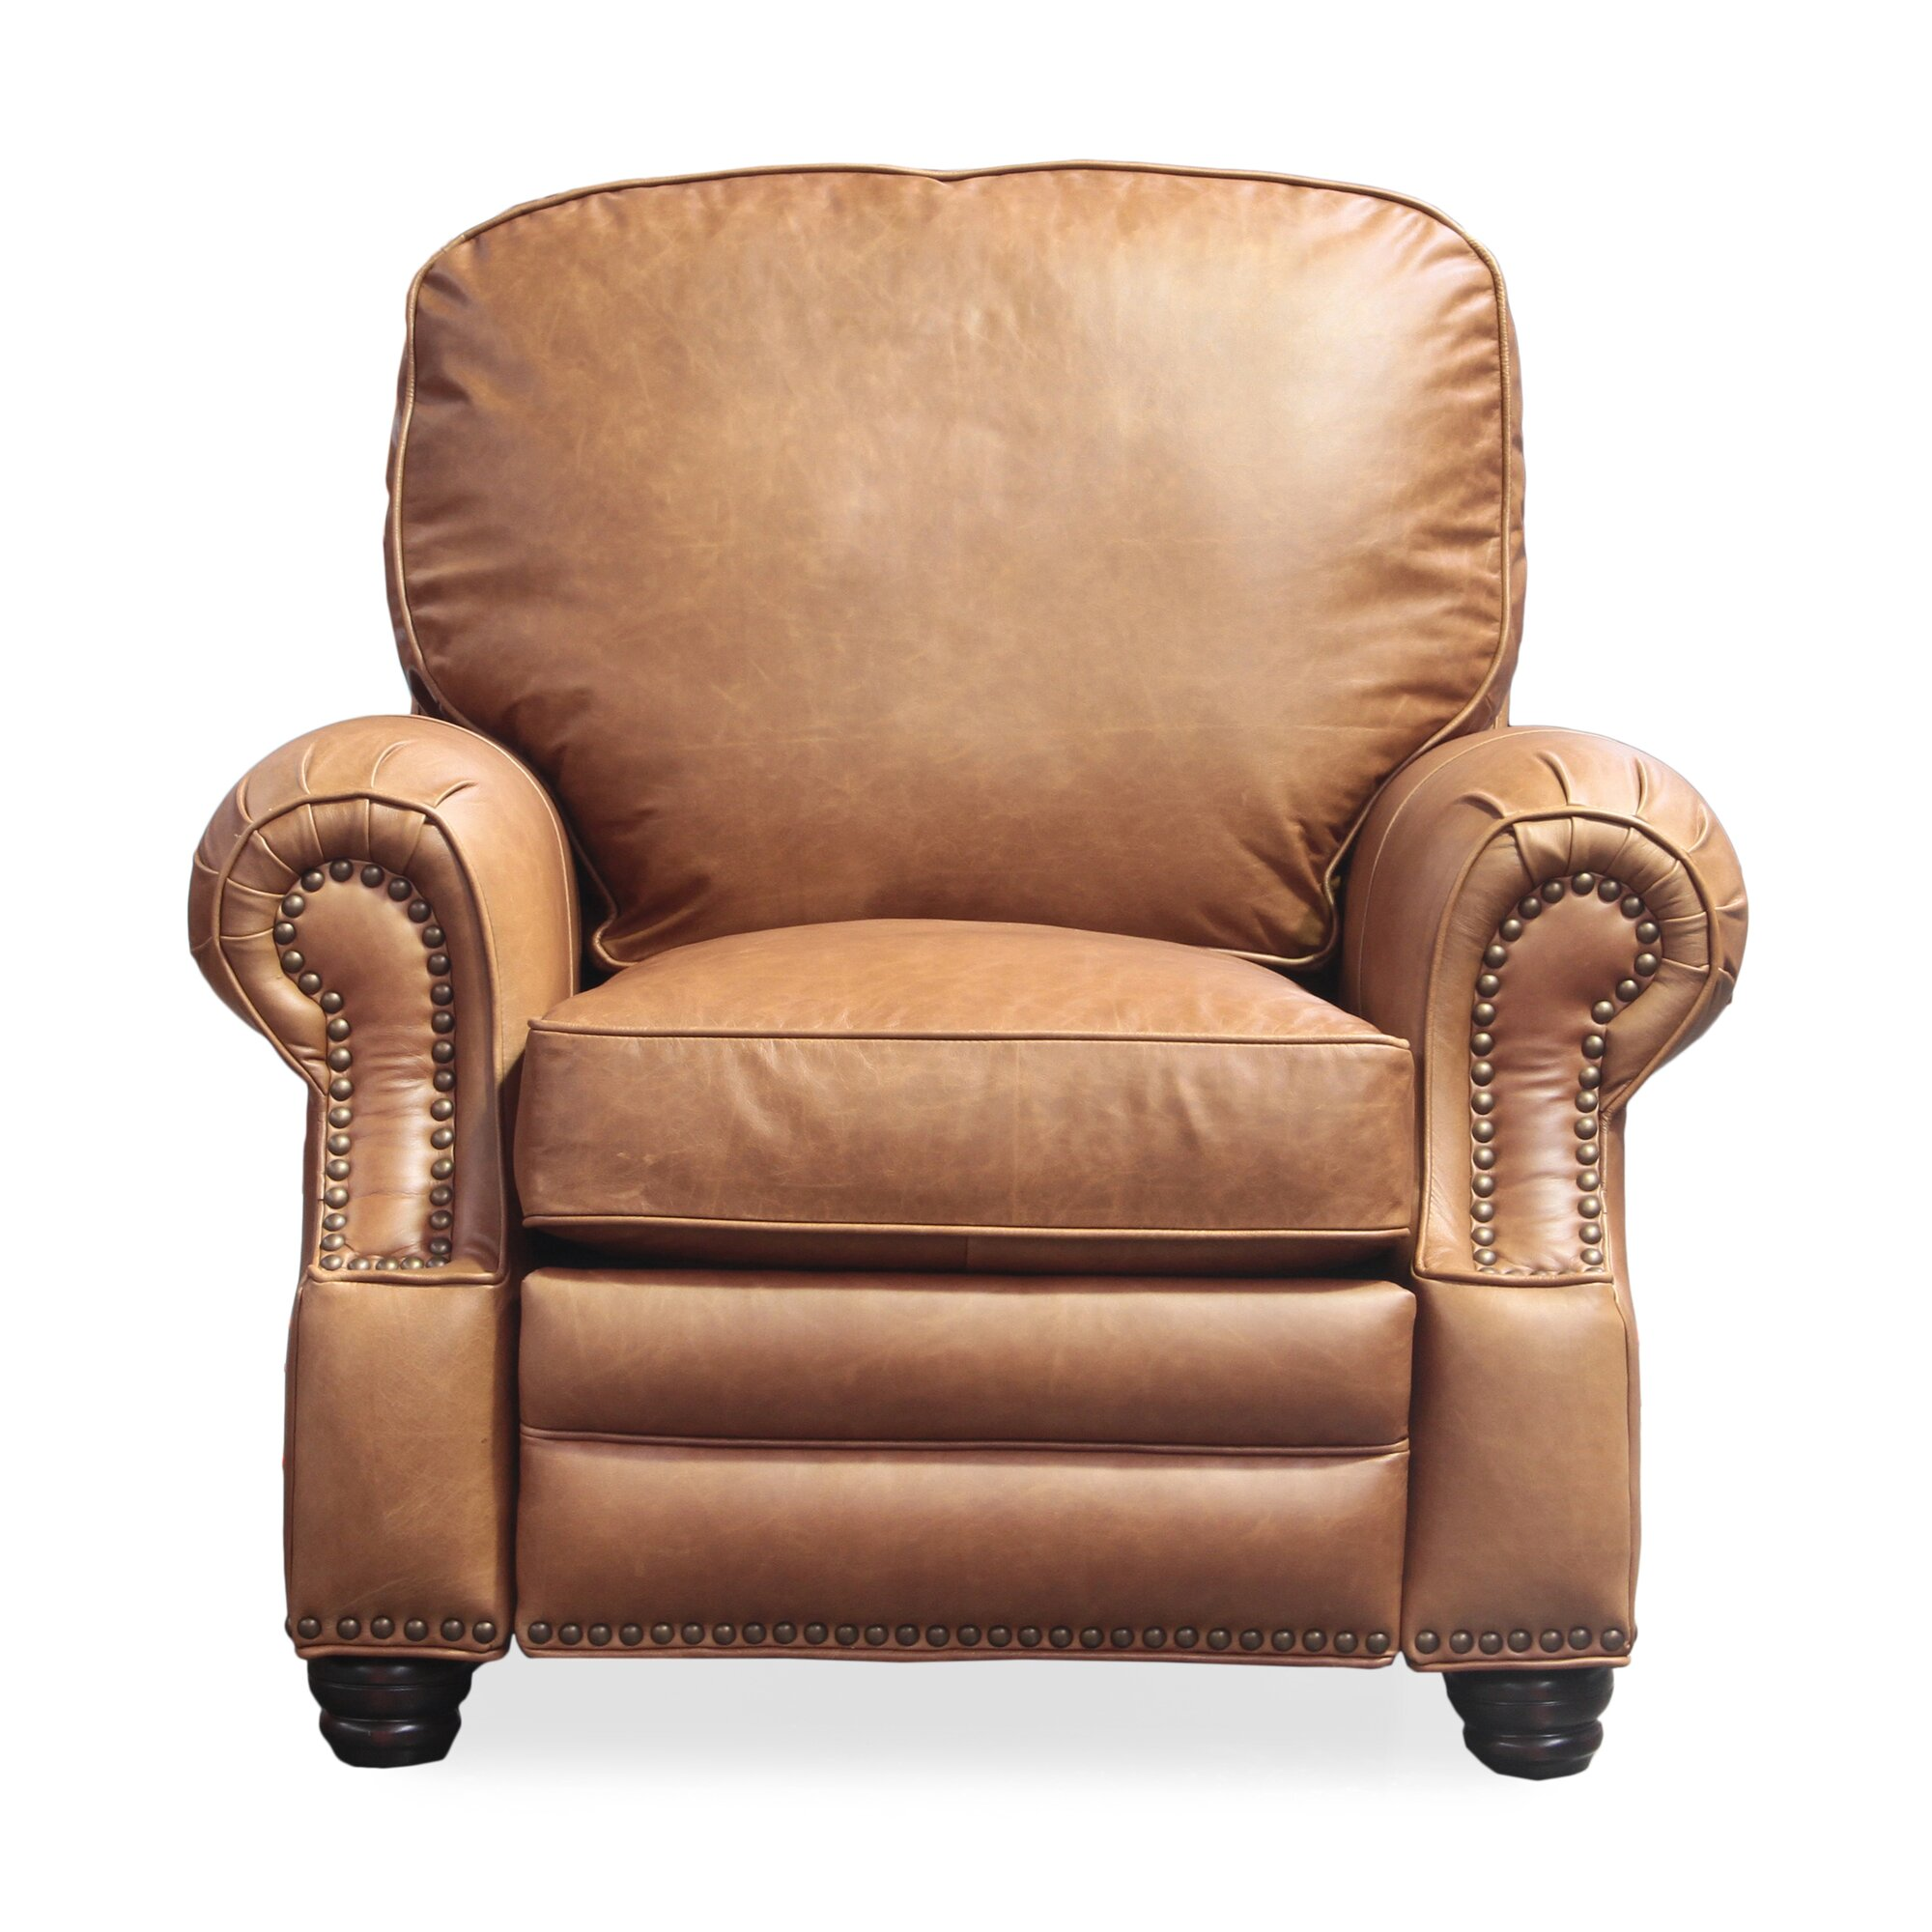 Barcalounger Longhorn II Recliner & Reviews | Wayfair